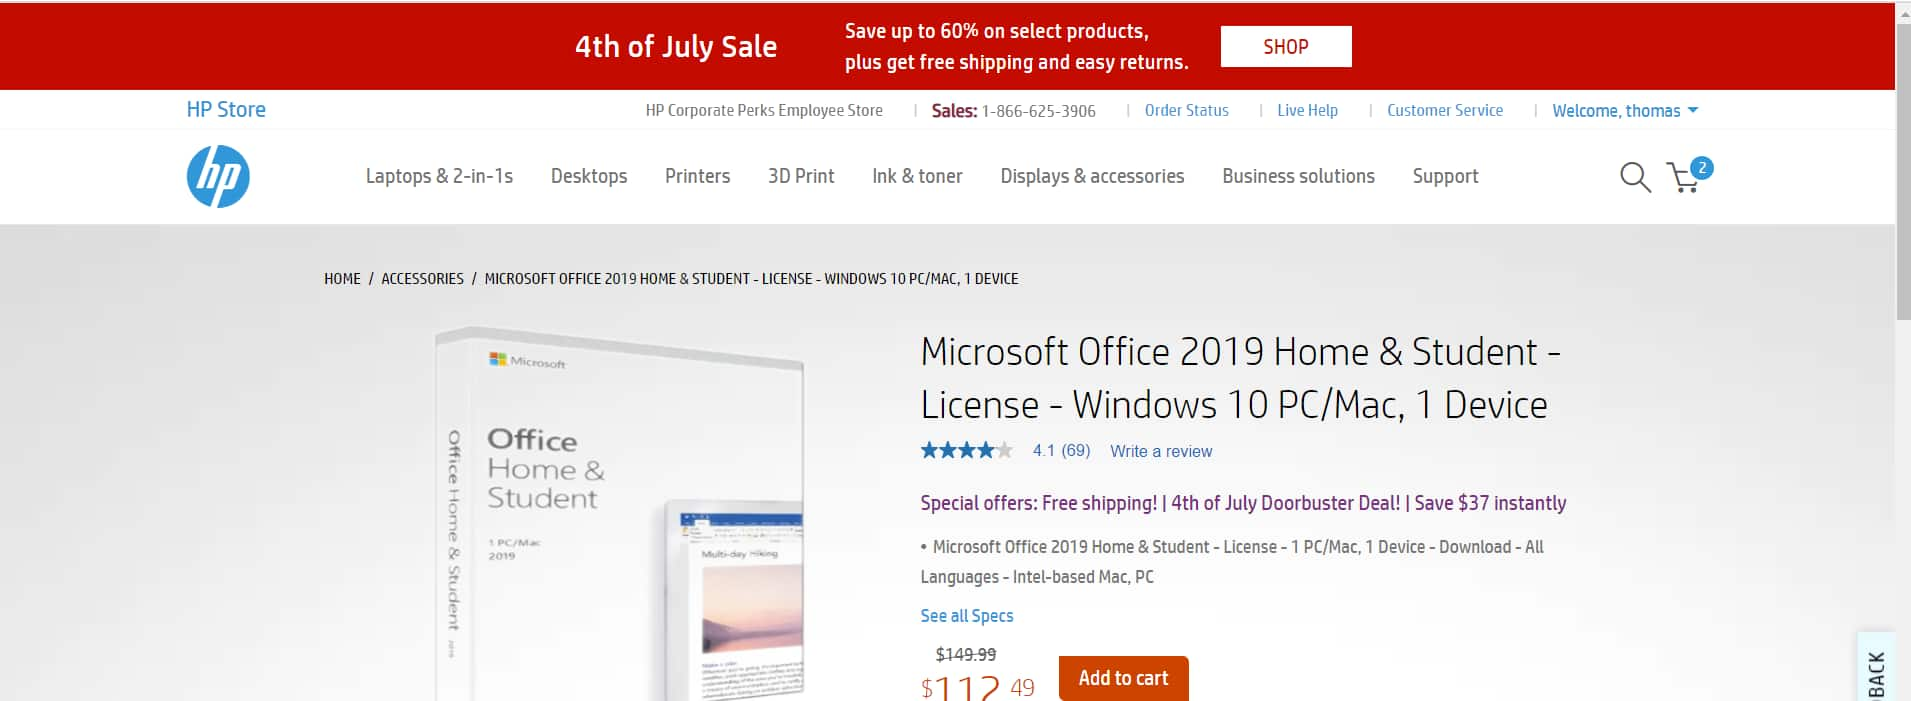 Microsoft office student home 2019 $112.49